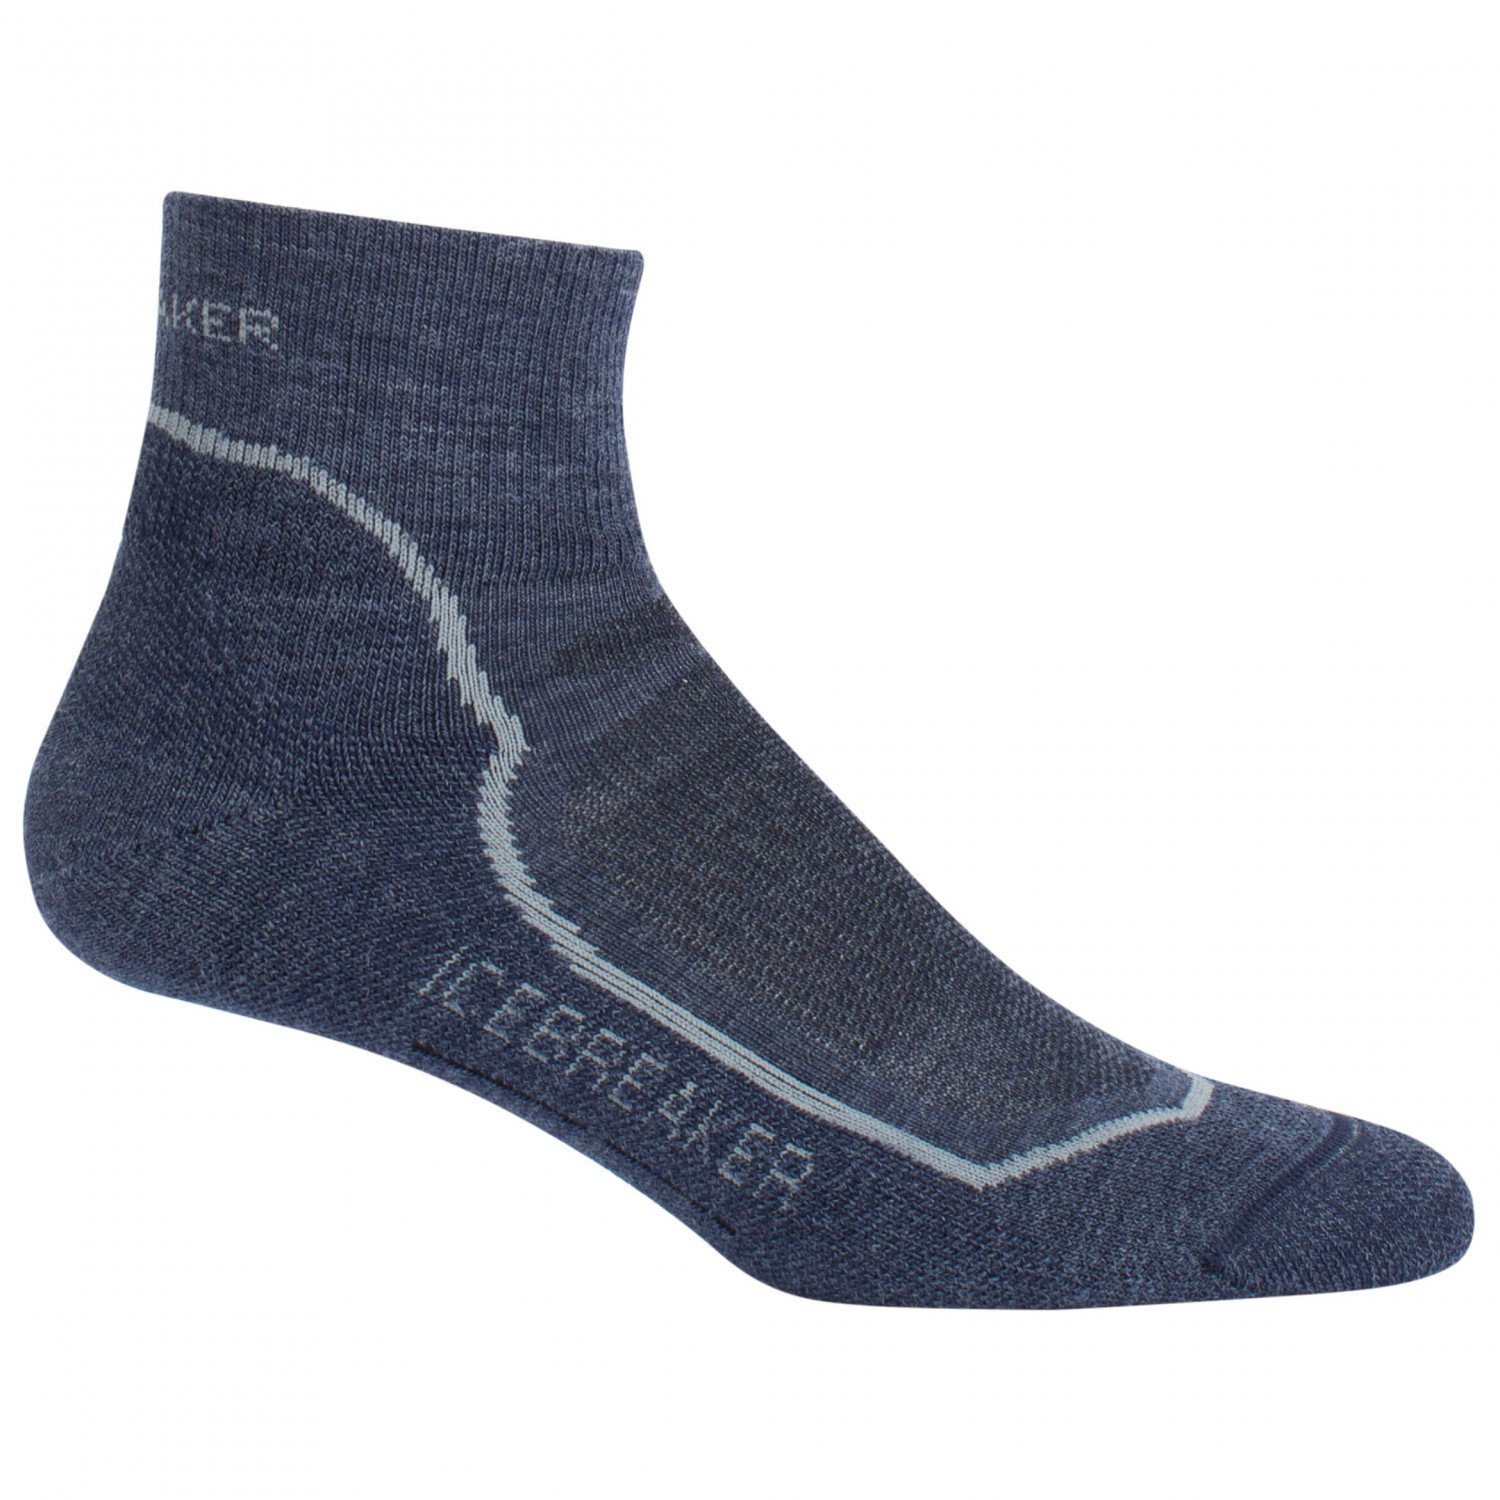 Icebreaker - Hike+ Light Mini - Wandersocken Fathom Heather / Twister Heather / Midnight Navy